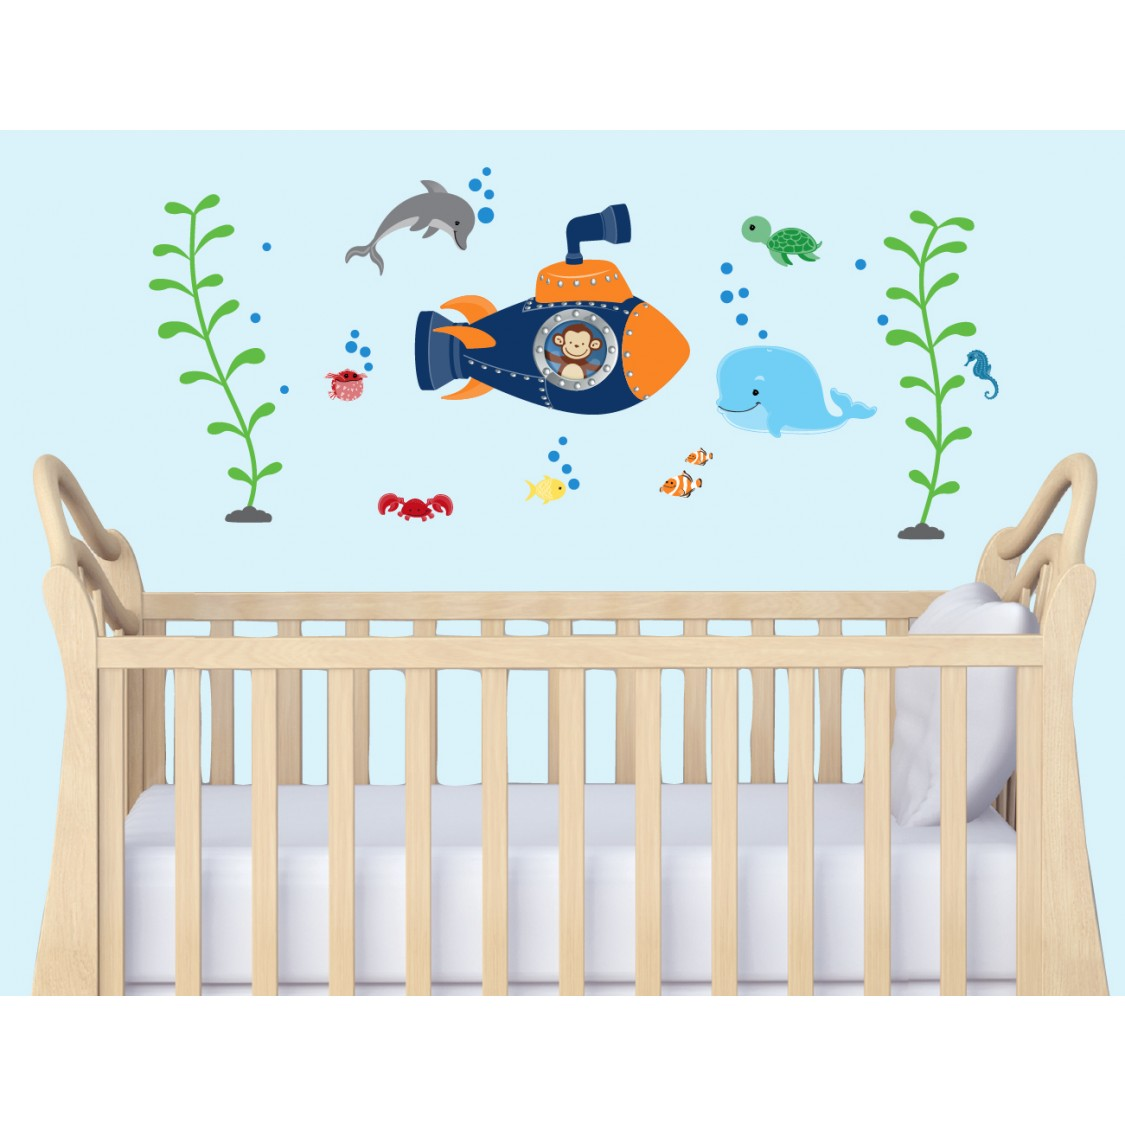 Peel And Stick Wall Murals & Nautical Wall Art For Nursery Room